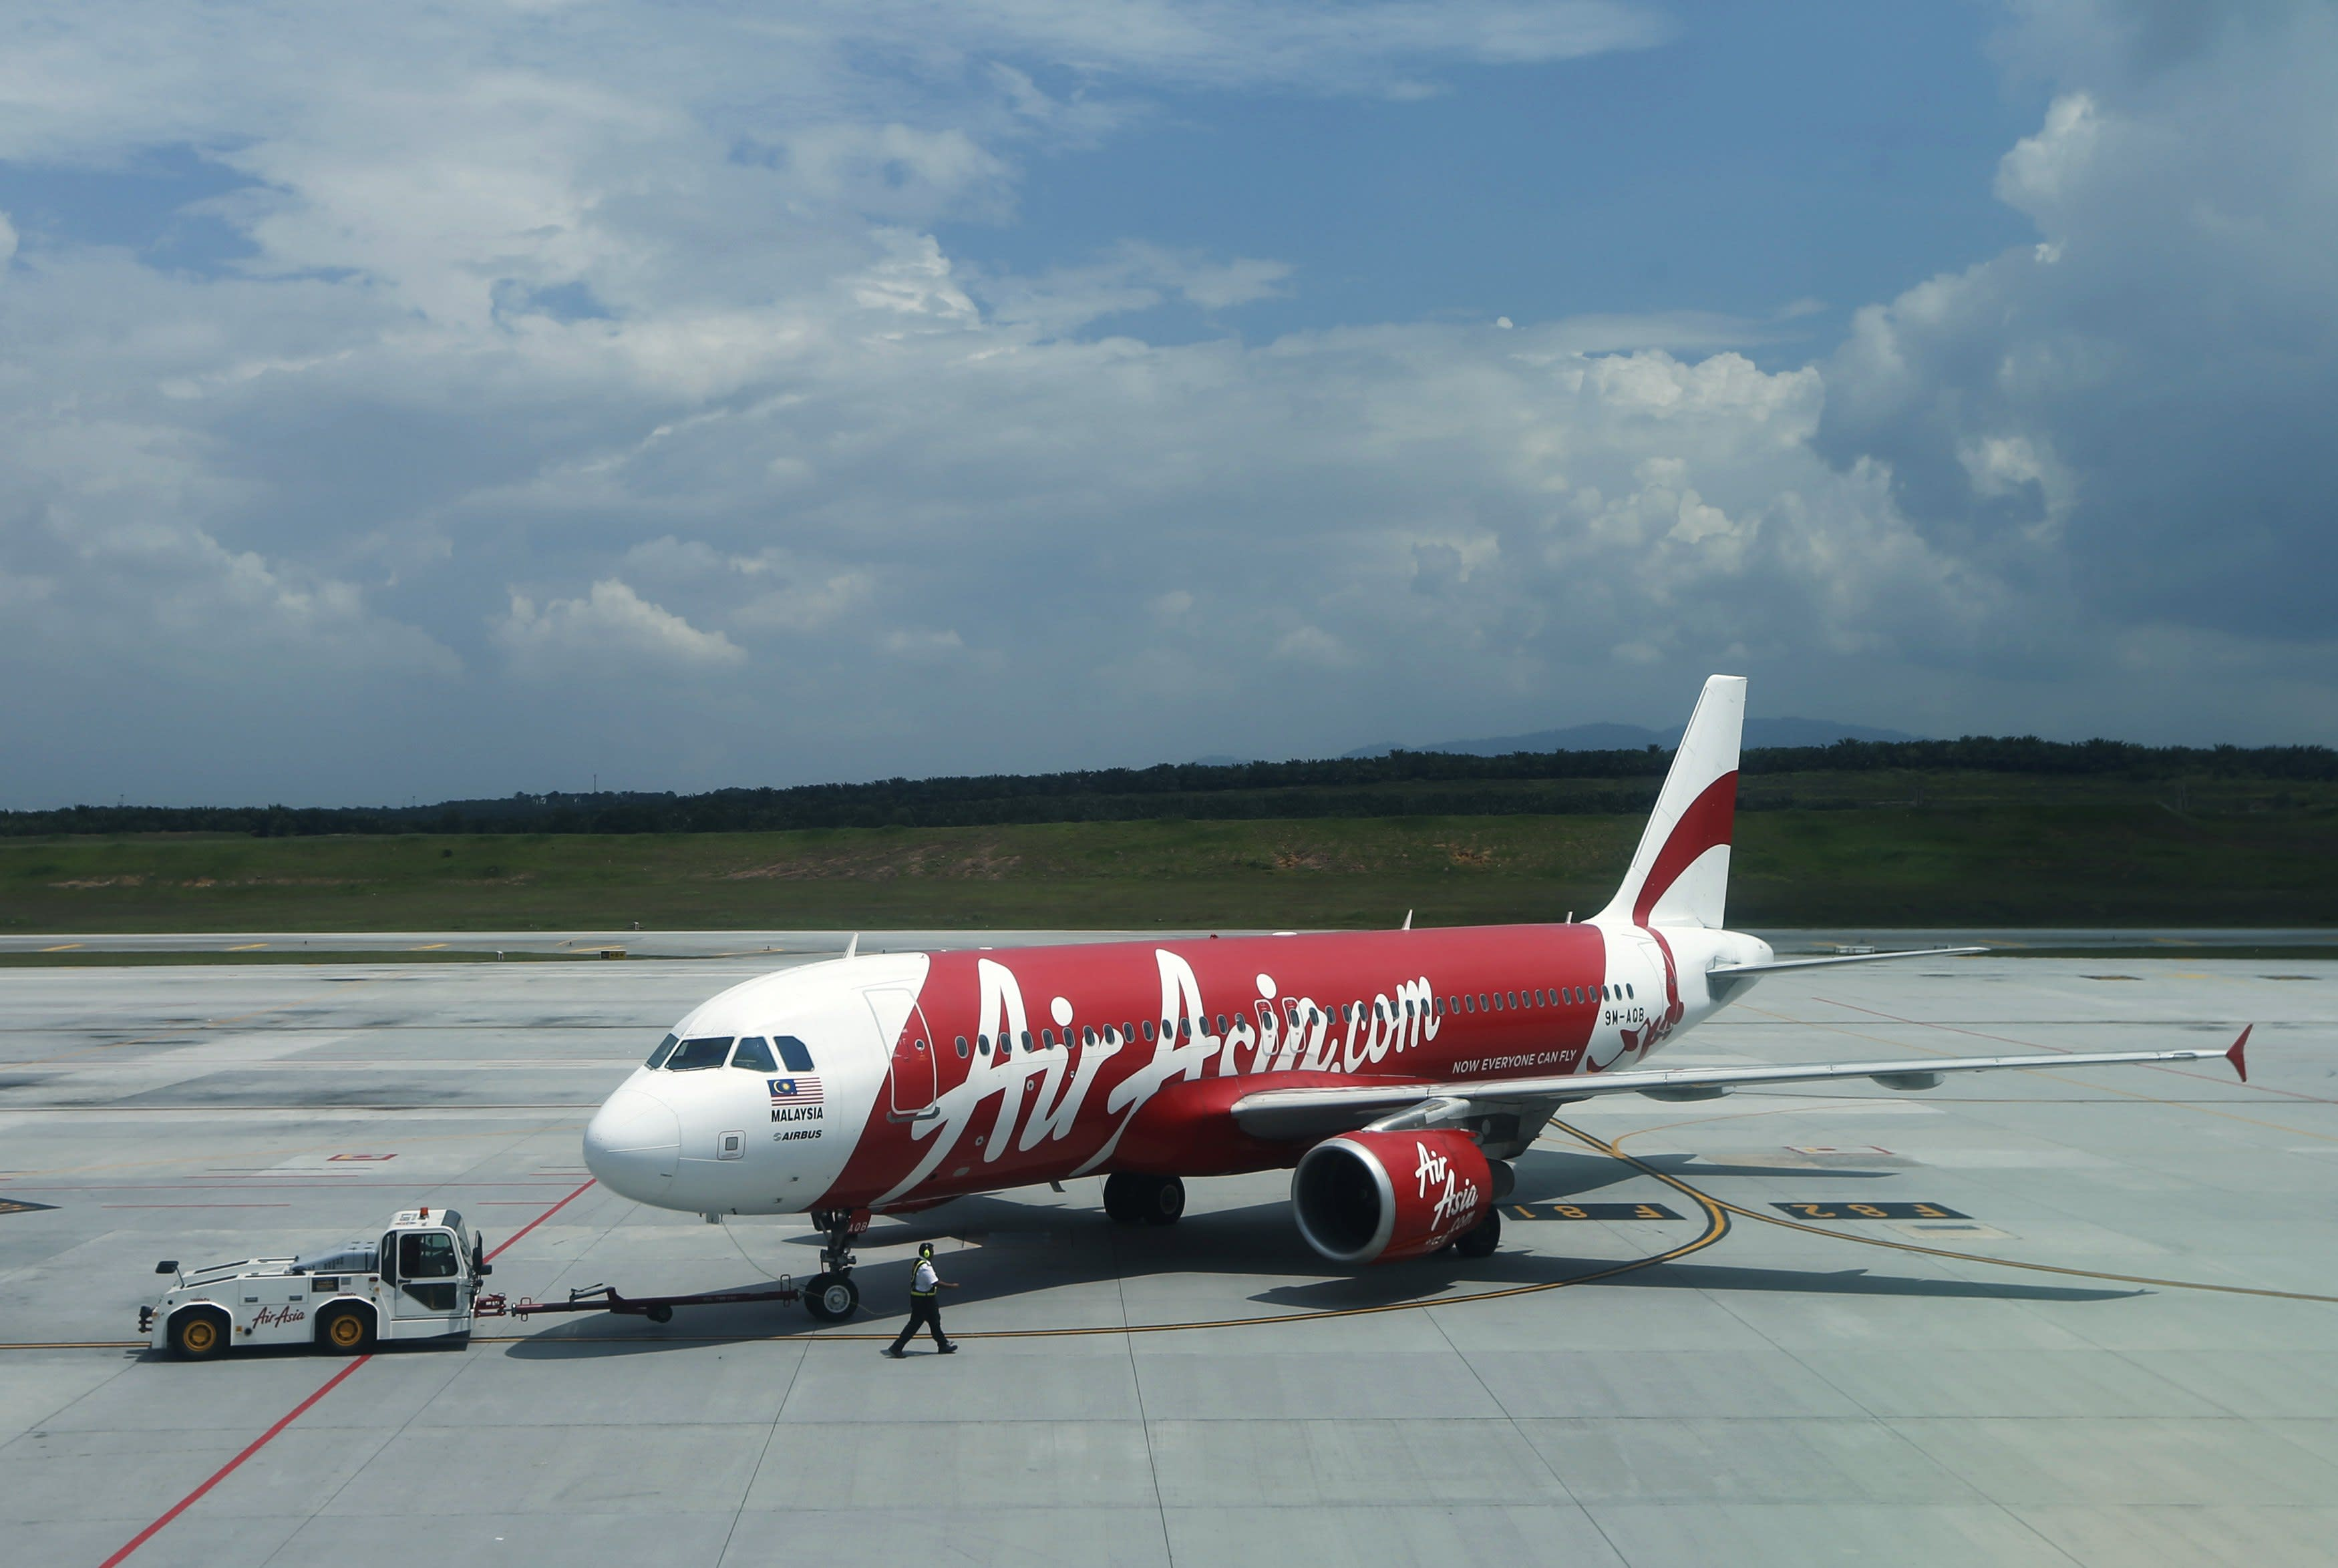 Search launched for missing AirAsia jet bound for Singapore from Indonesia